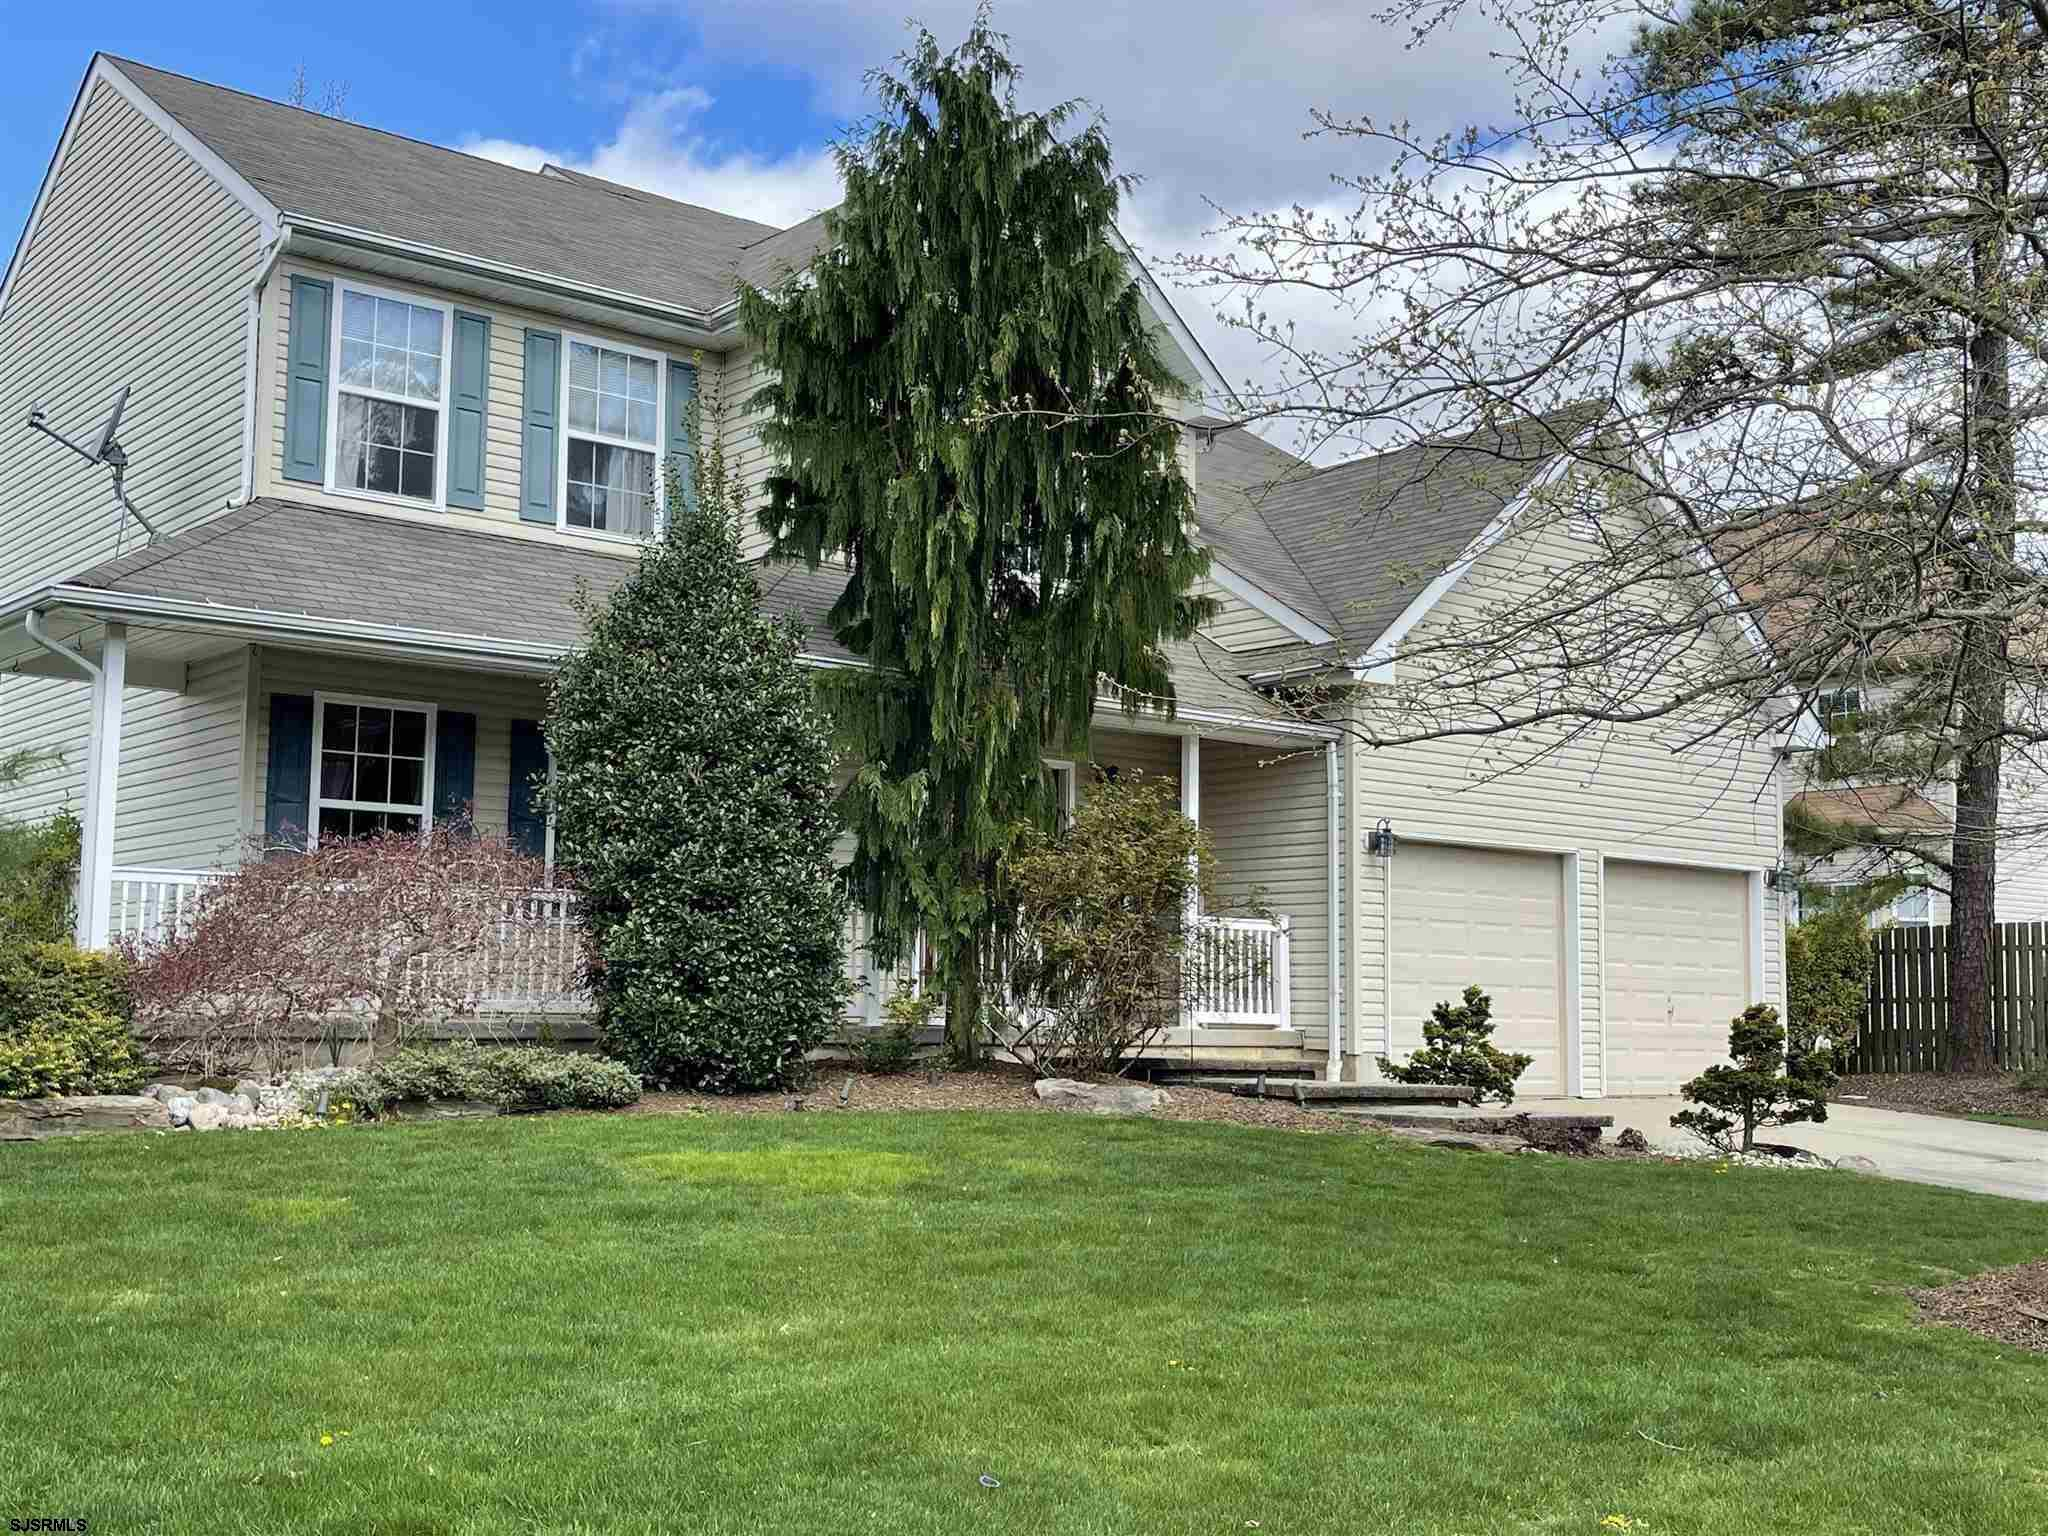 ******WELCOME HOME TO GARDENVIEW IN THE POPULAR AND CENTRAL LOCATION OF SYCAMORE ESTATES!! WOW! ABSO